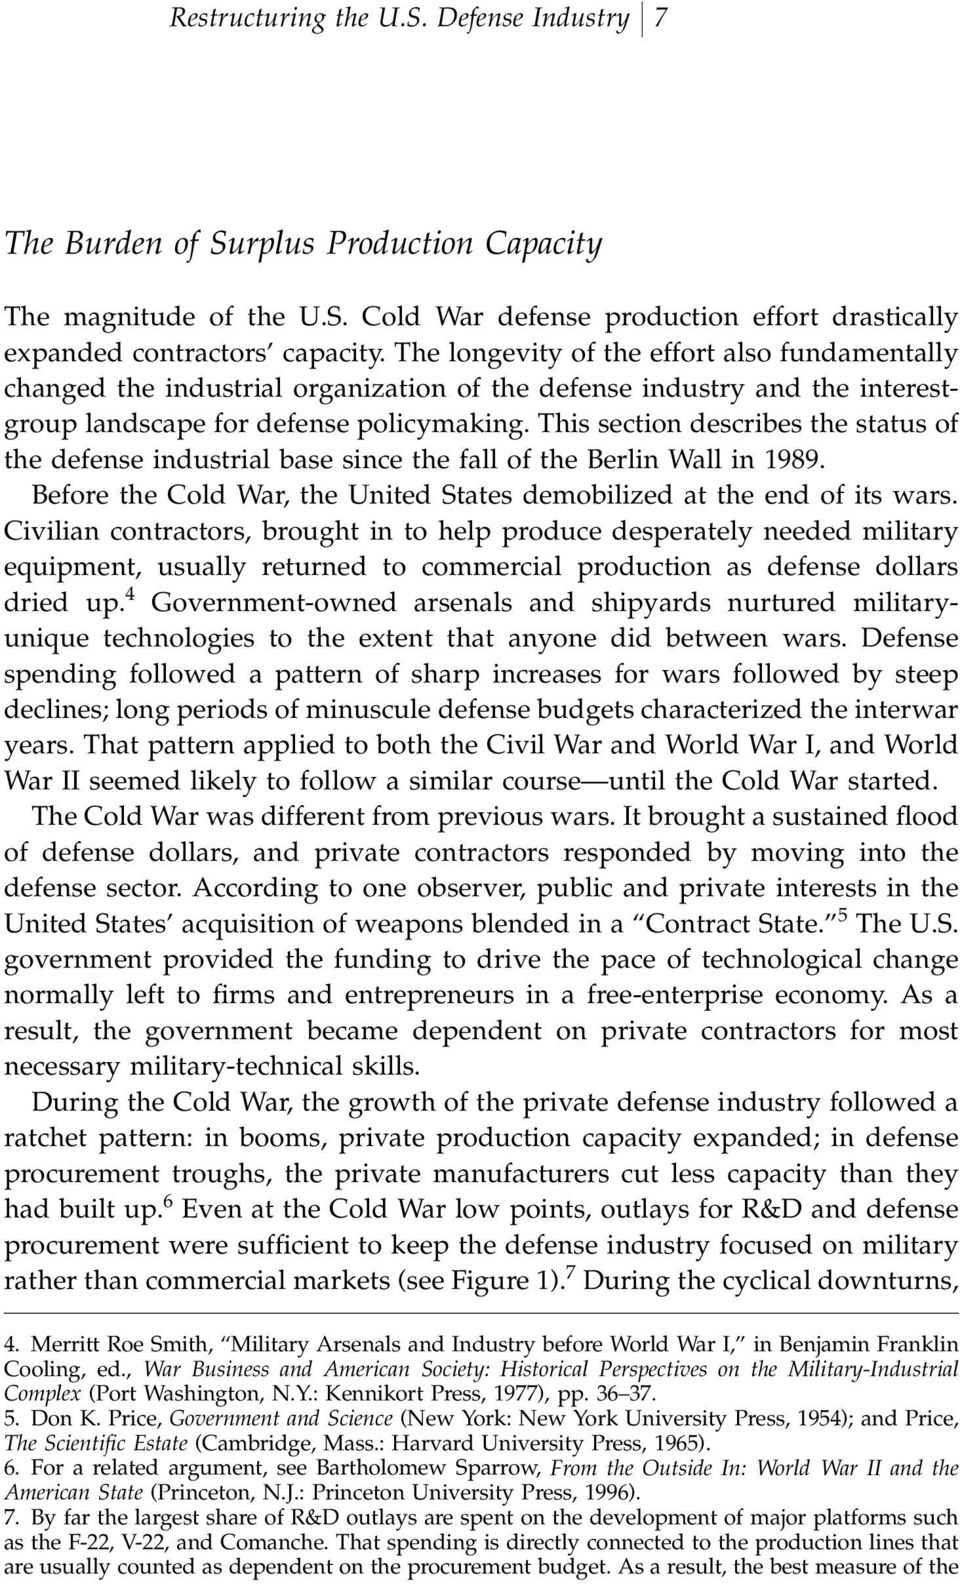 This section describes the status of the defense industrial base since the fall of the Berlin Wall in 1989. Before the Cold War, the United States demobilized at the end of its wars.